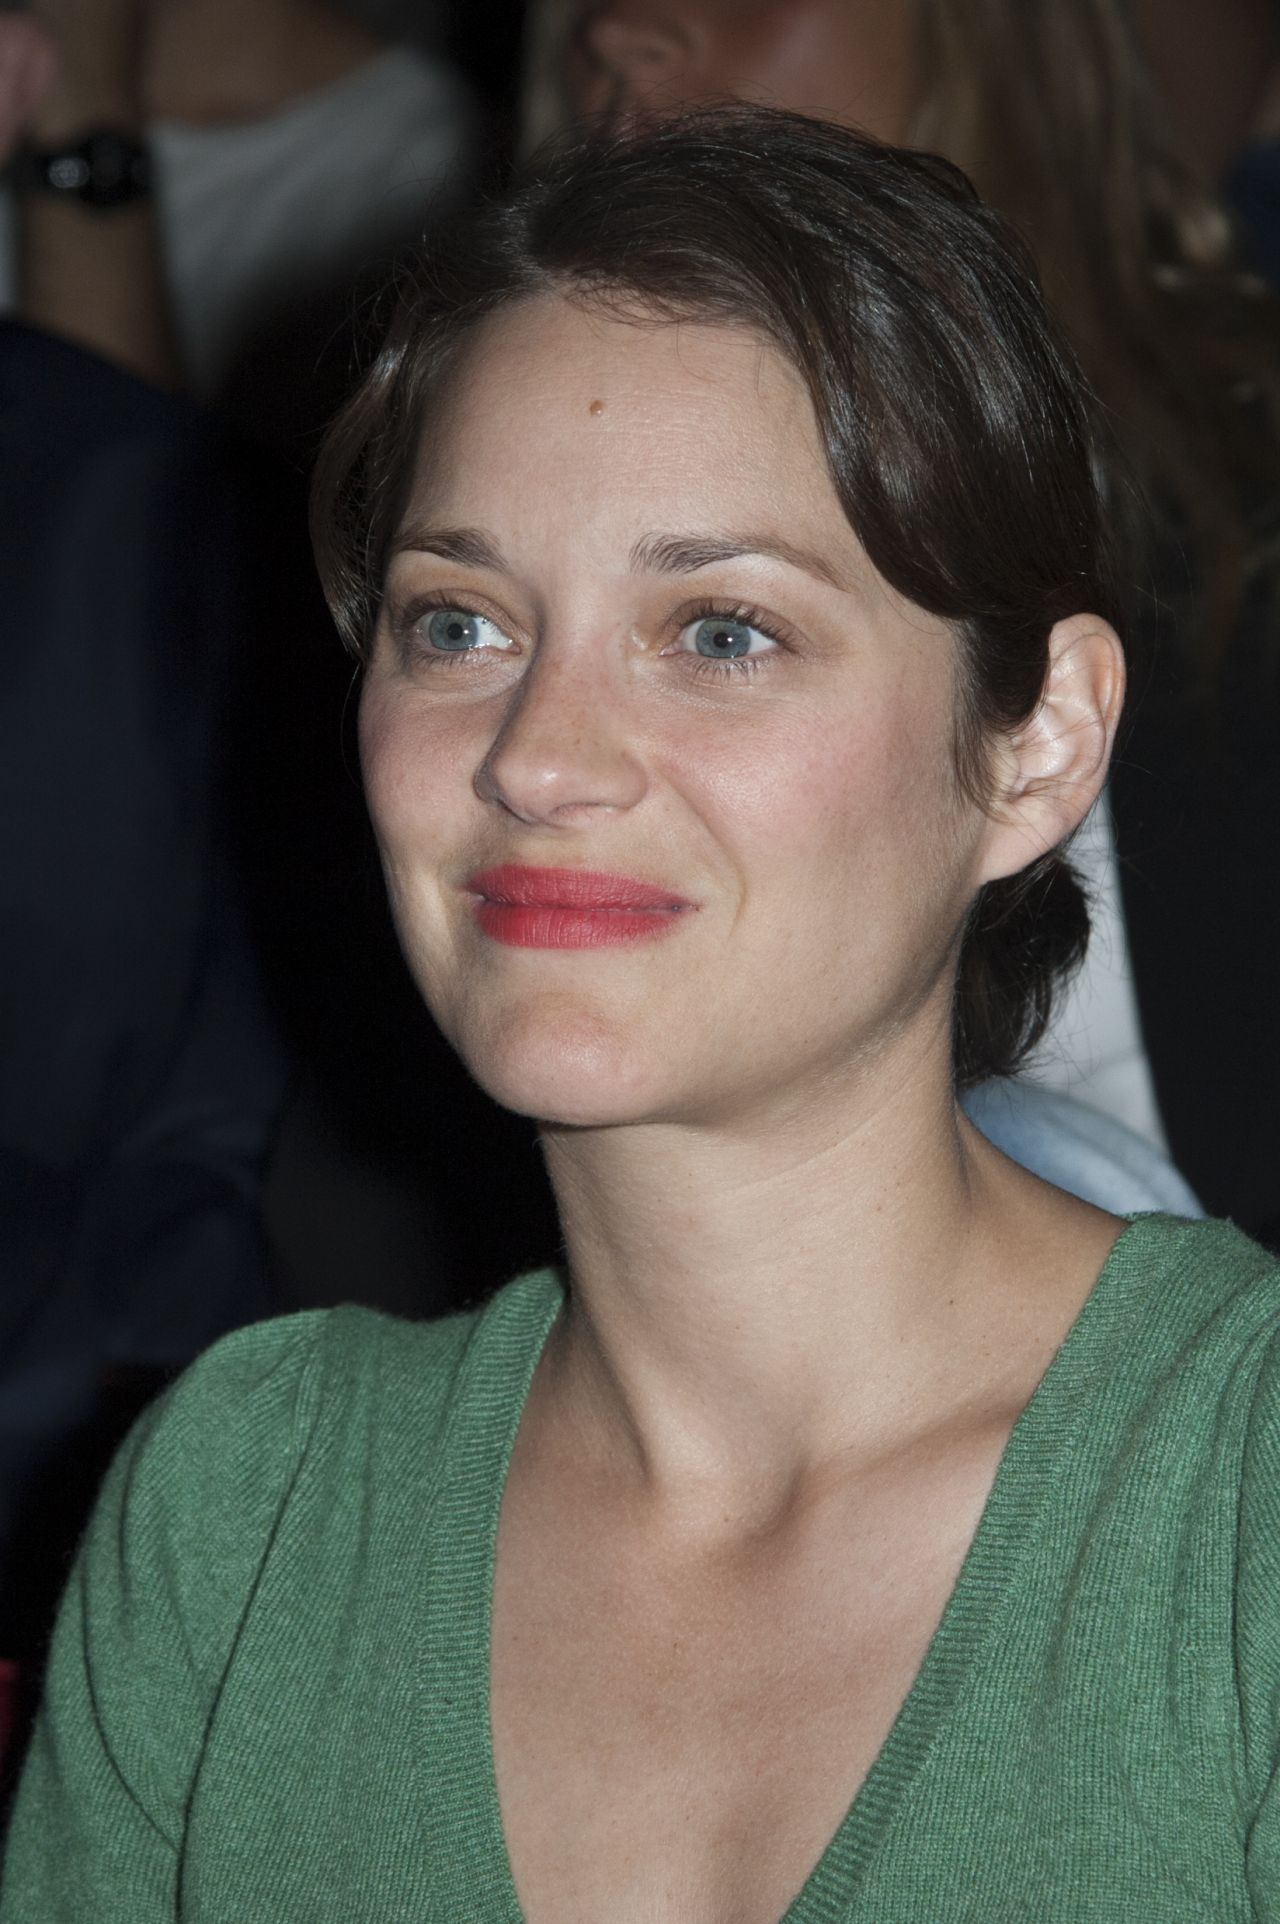 Military fashion 2017 - Marion Cotillard 2015 Atmospheres Festival Closing